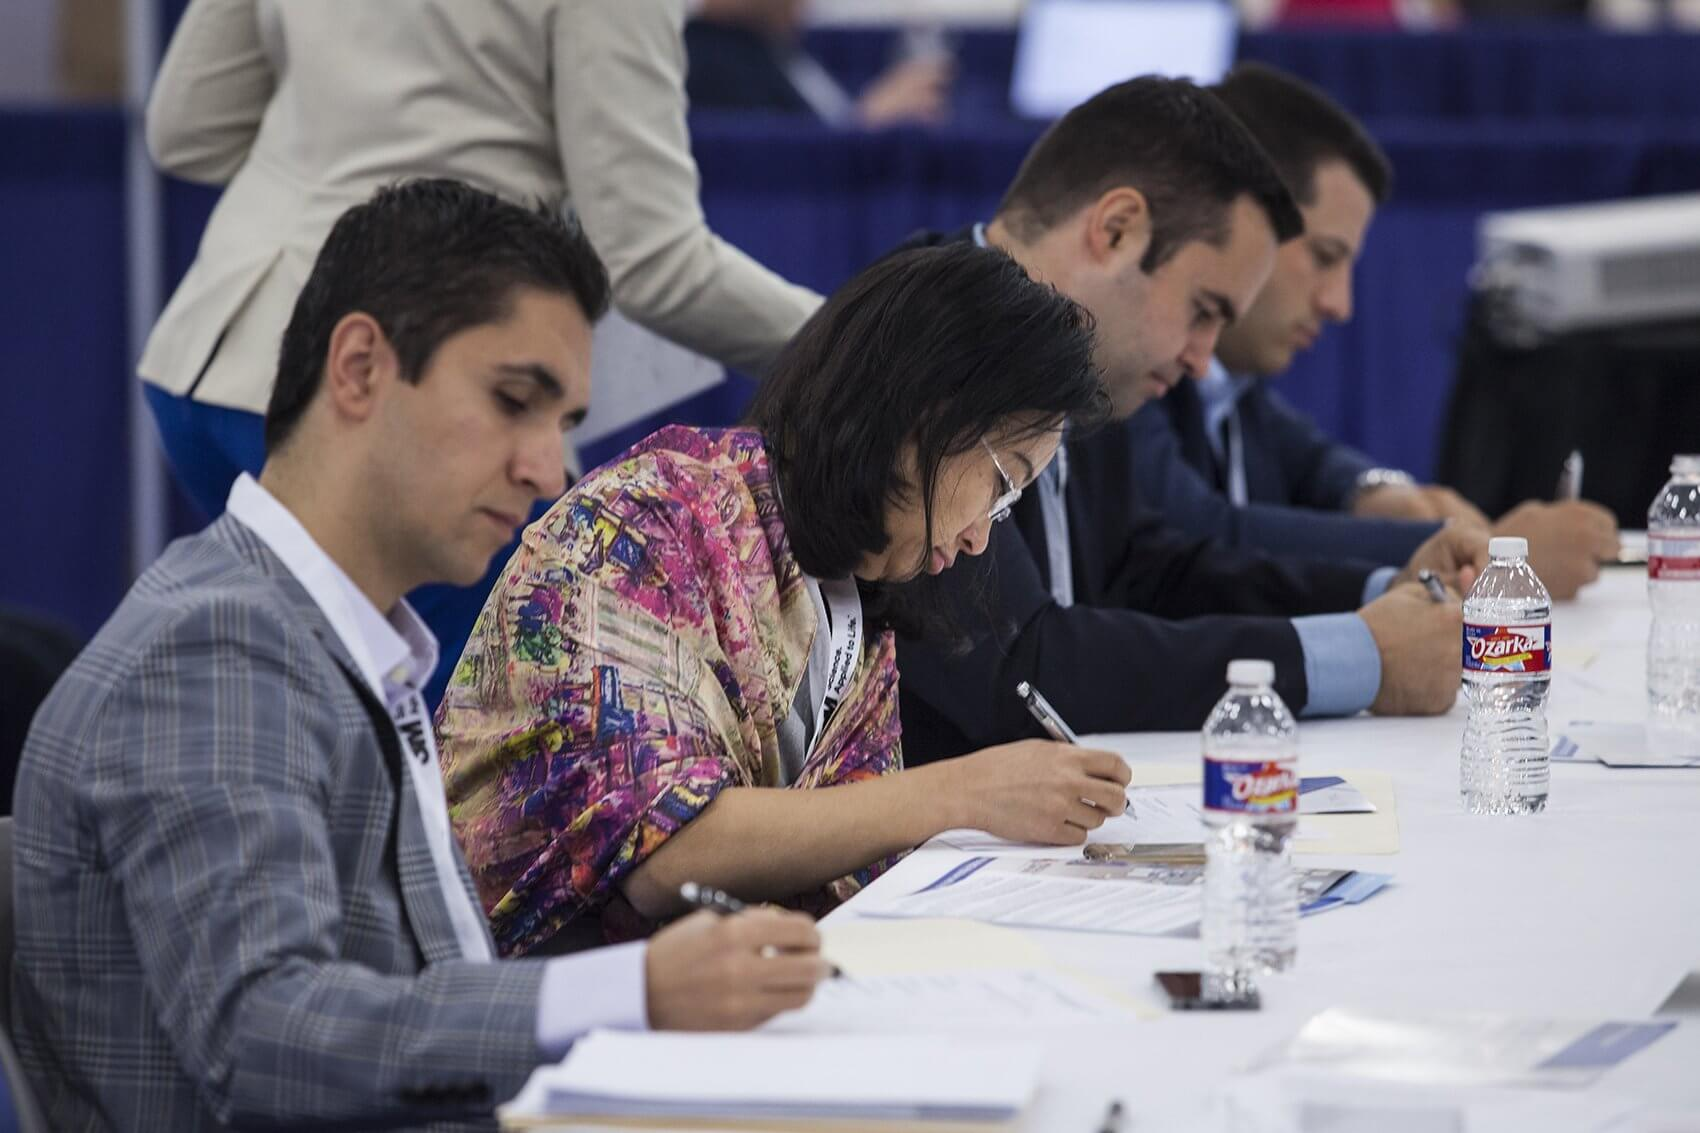 The judges—Farzard Soleimani, M.D., Lynda Chin, M.D., Eric Richardson, Ph.D. and Thomas DeSouza—make their selections.